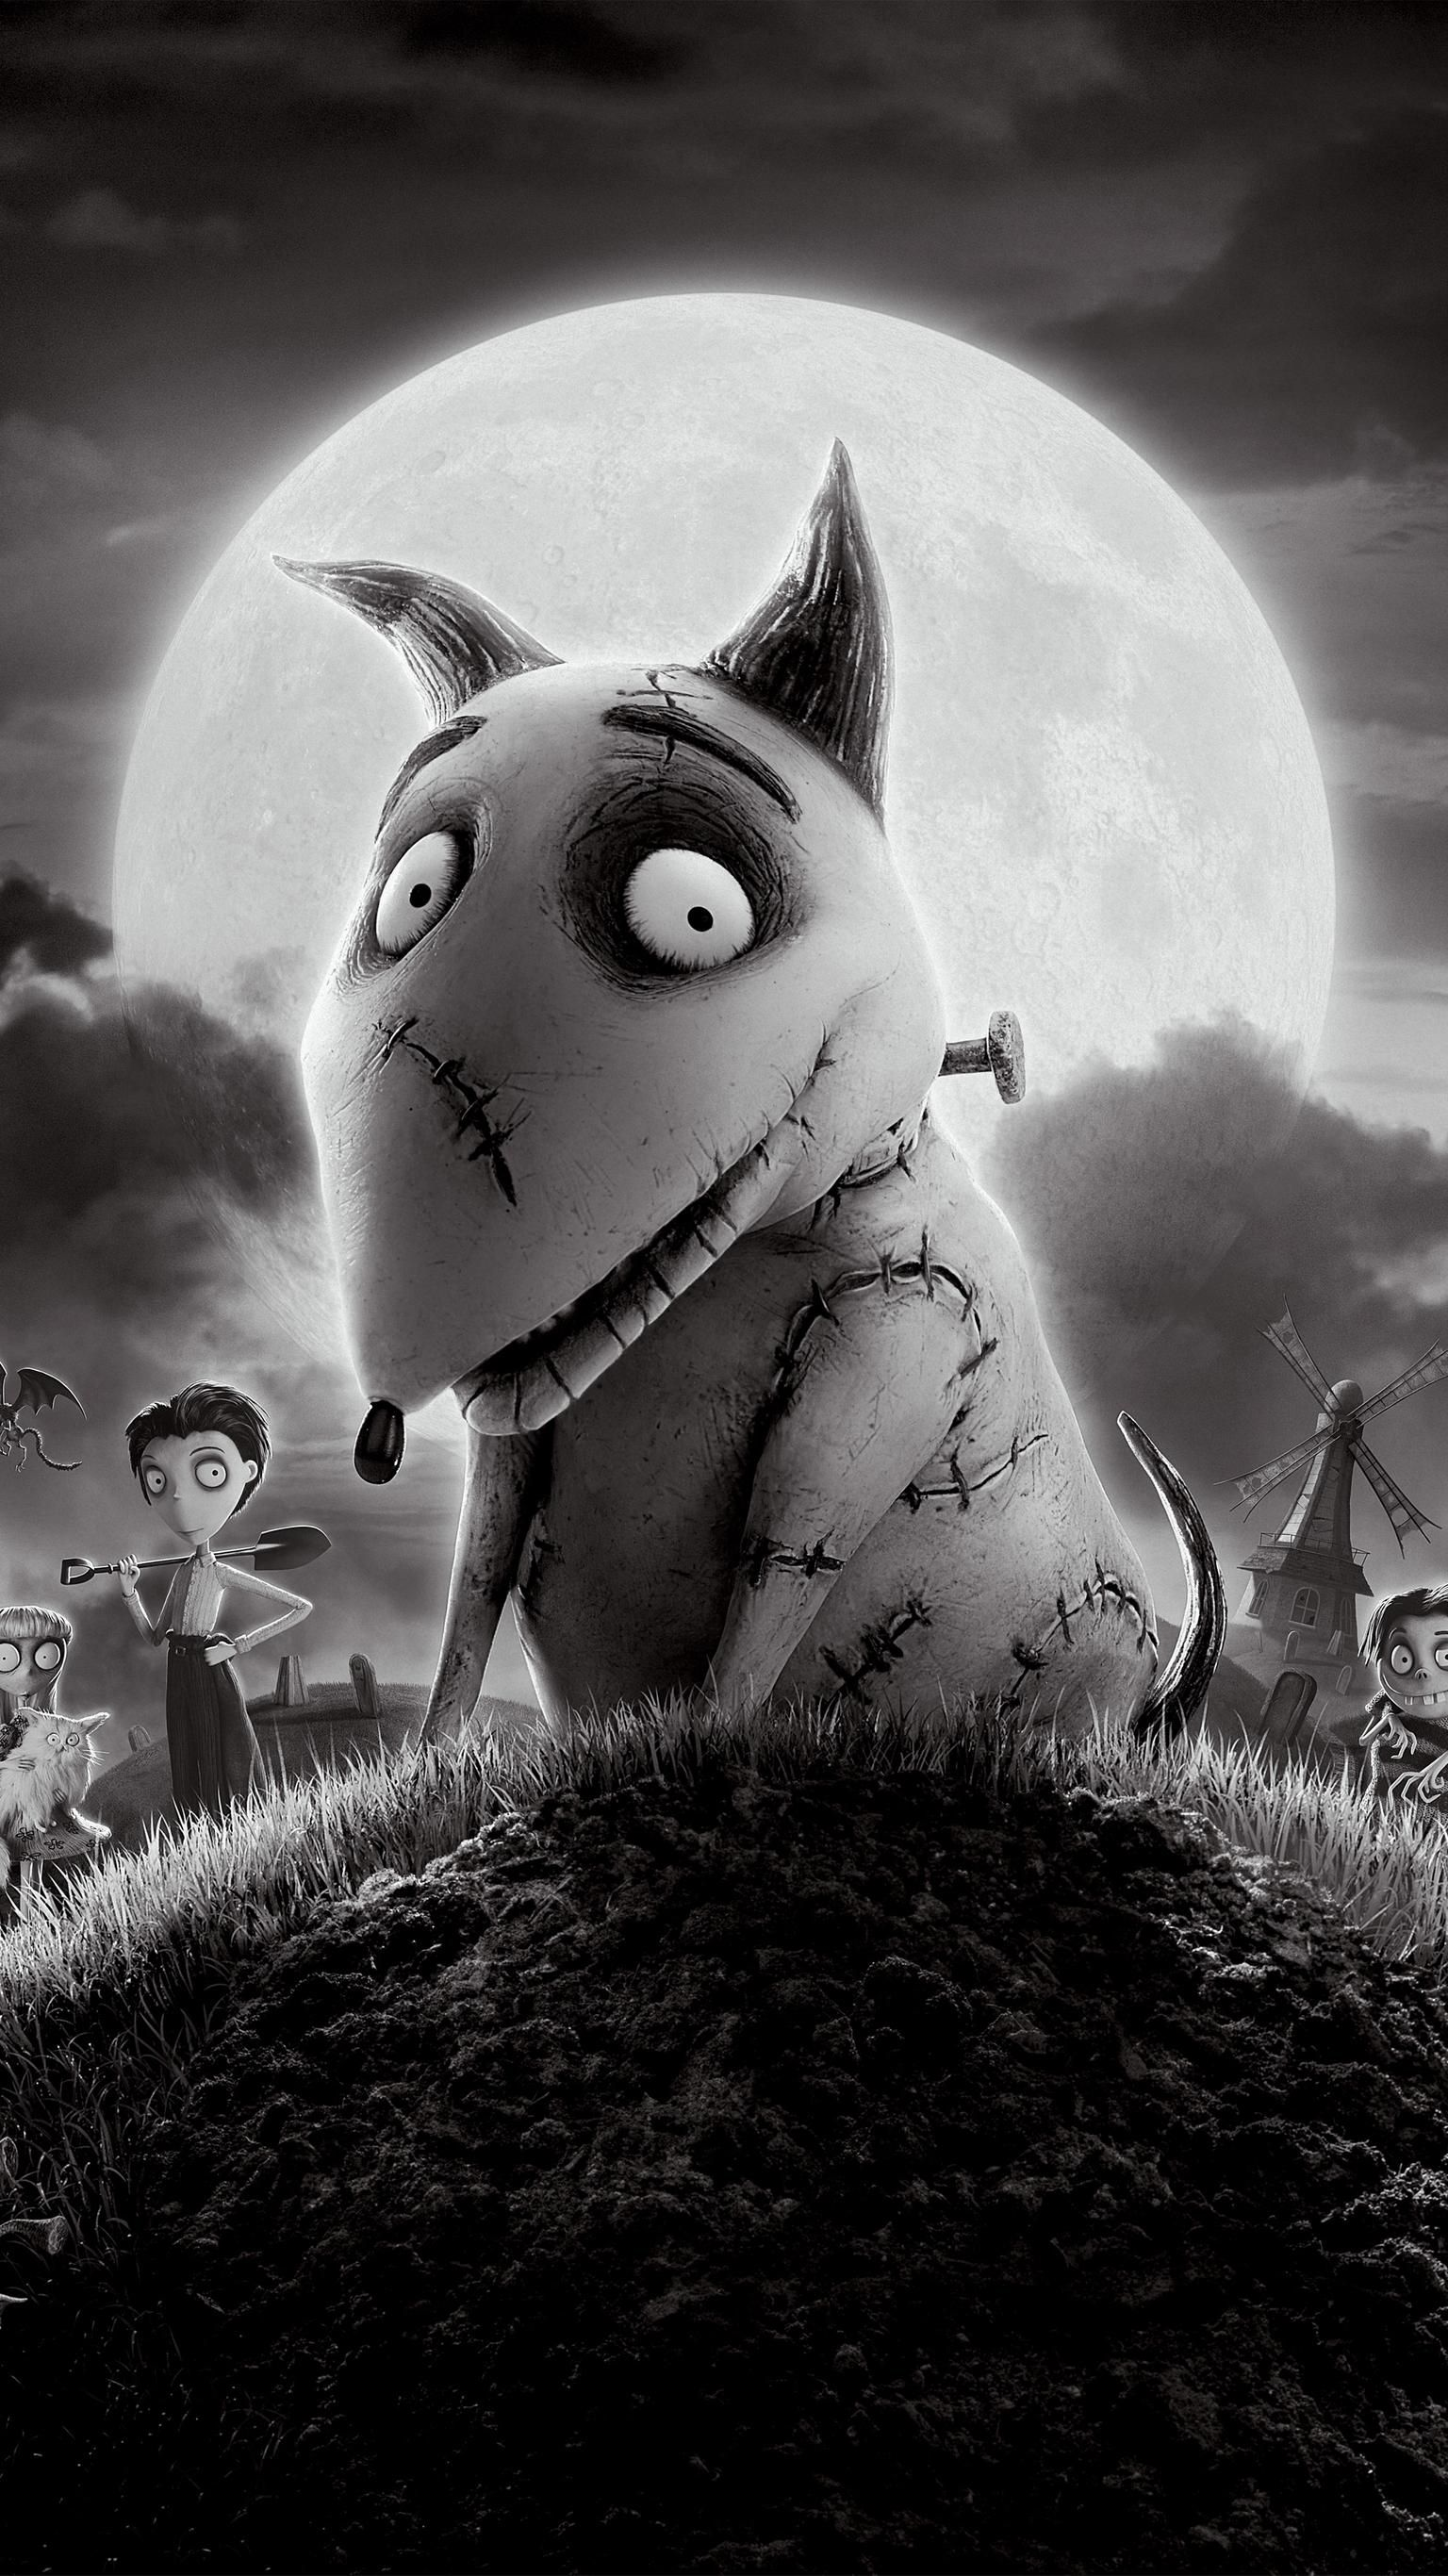 Frankenweenie 2012 Phone Wallpaper Moviemania In 2020 Halloween Illustration Tim Burton Films Wallpaper